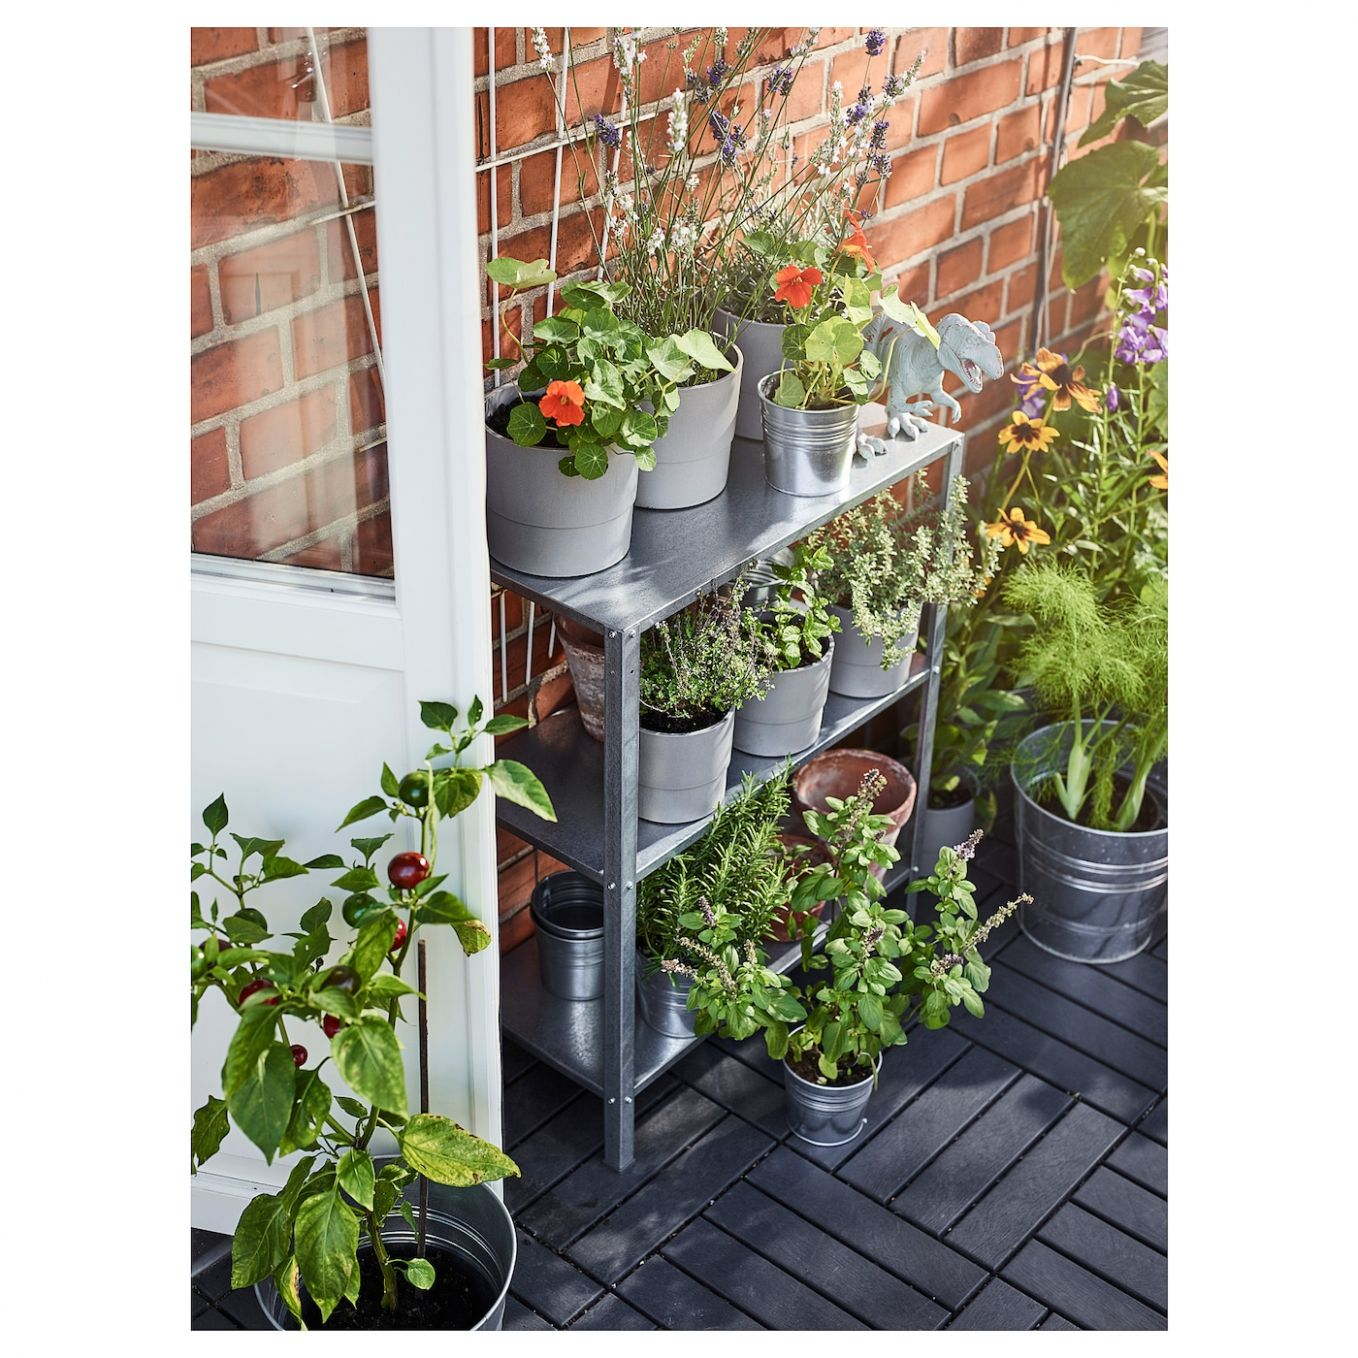 HYLLIS Shelving unit - in/outdoor 12x12x12 cm